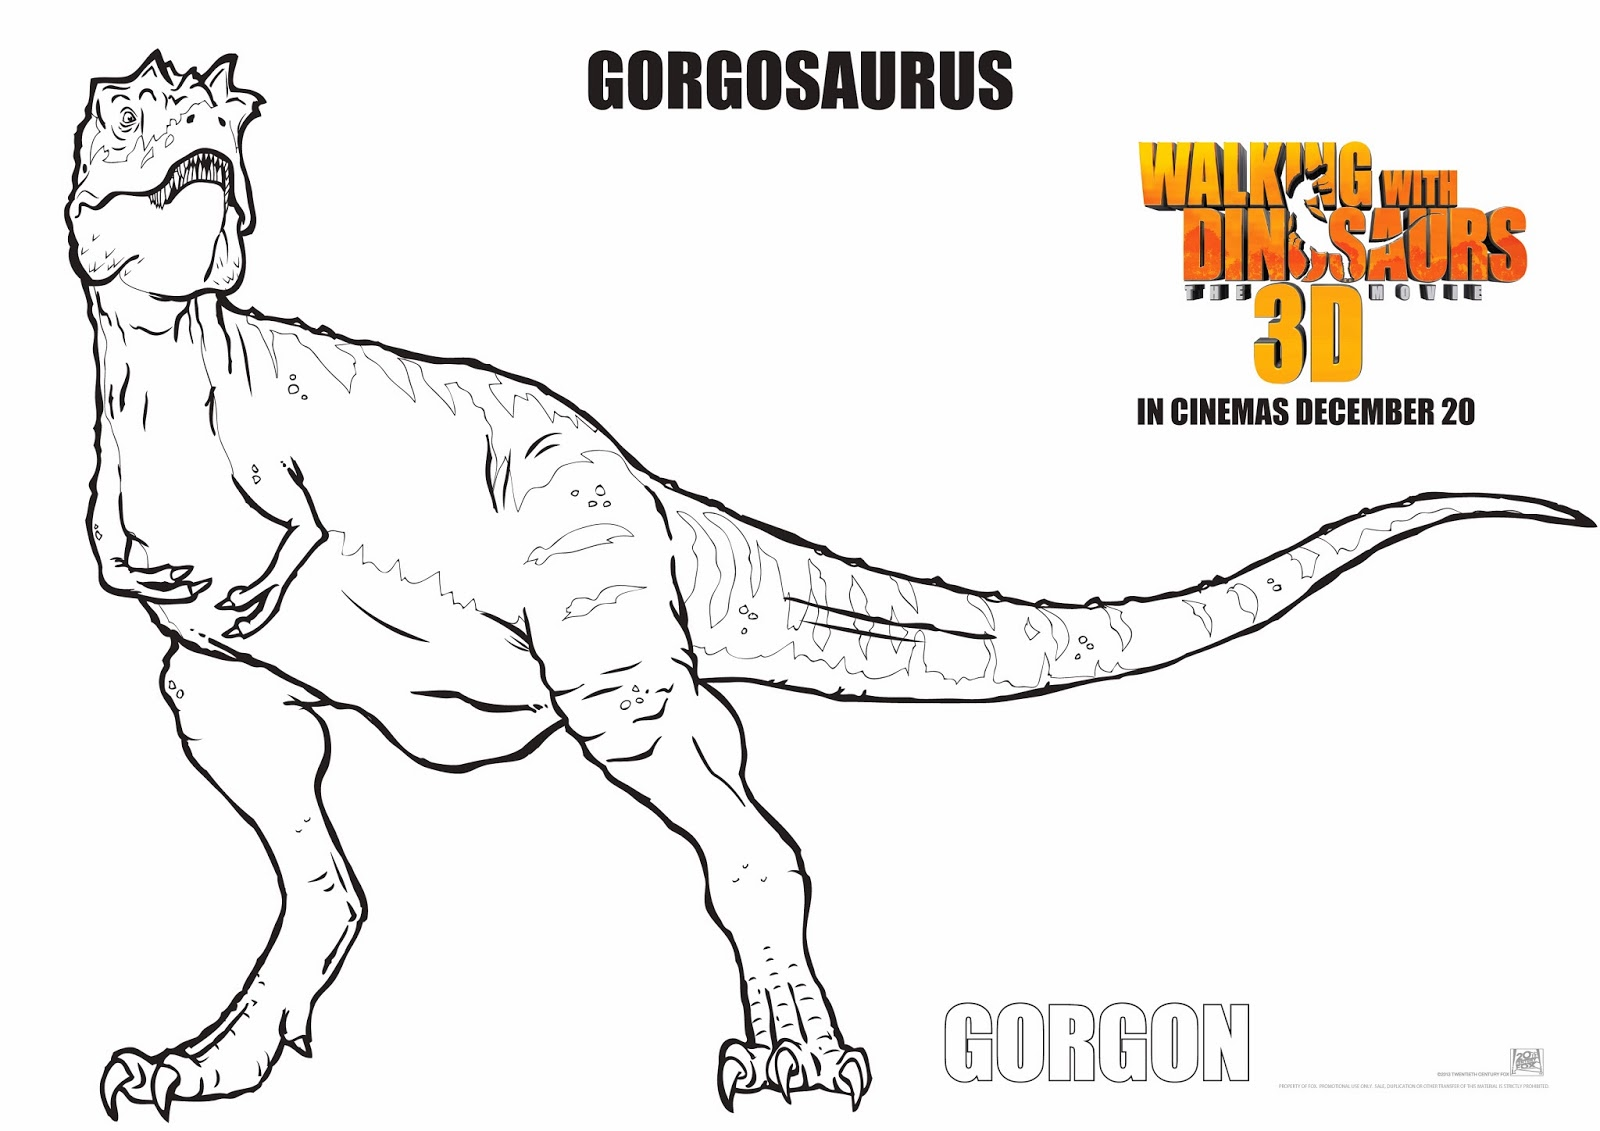 walking with dinosaurs coloring pages - photo #5